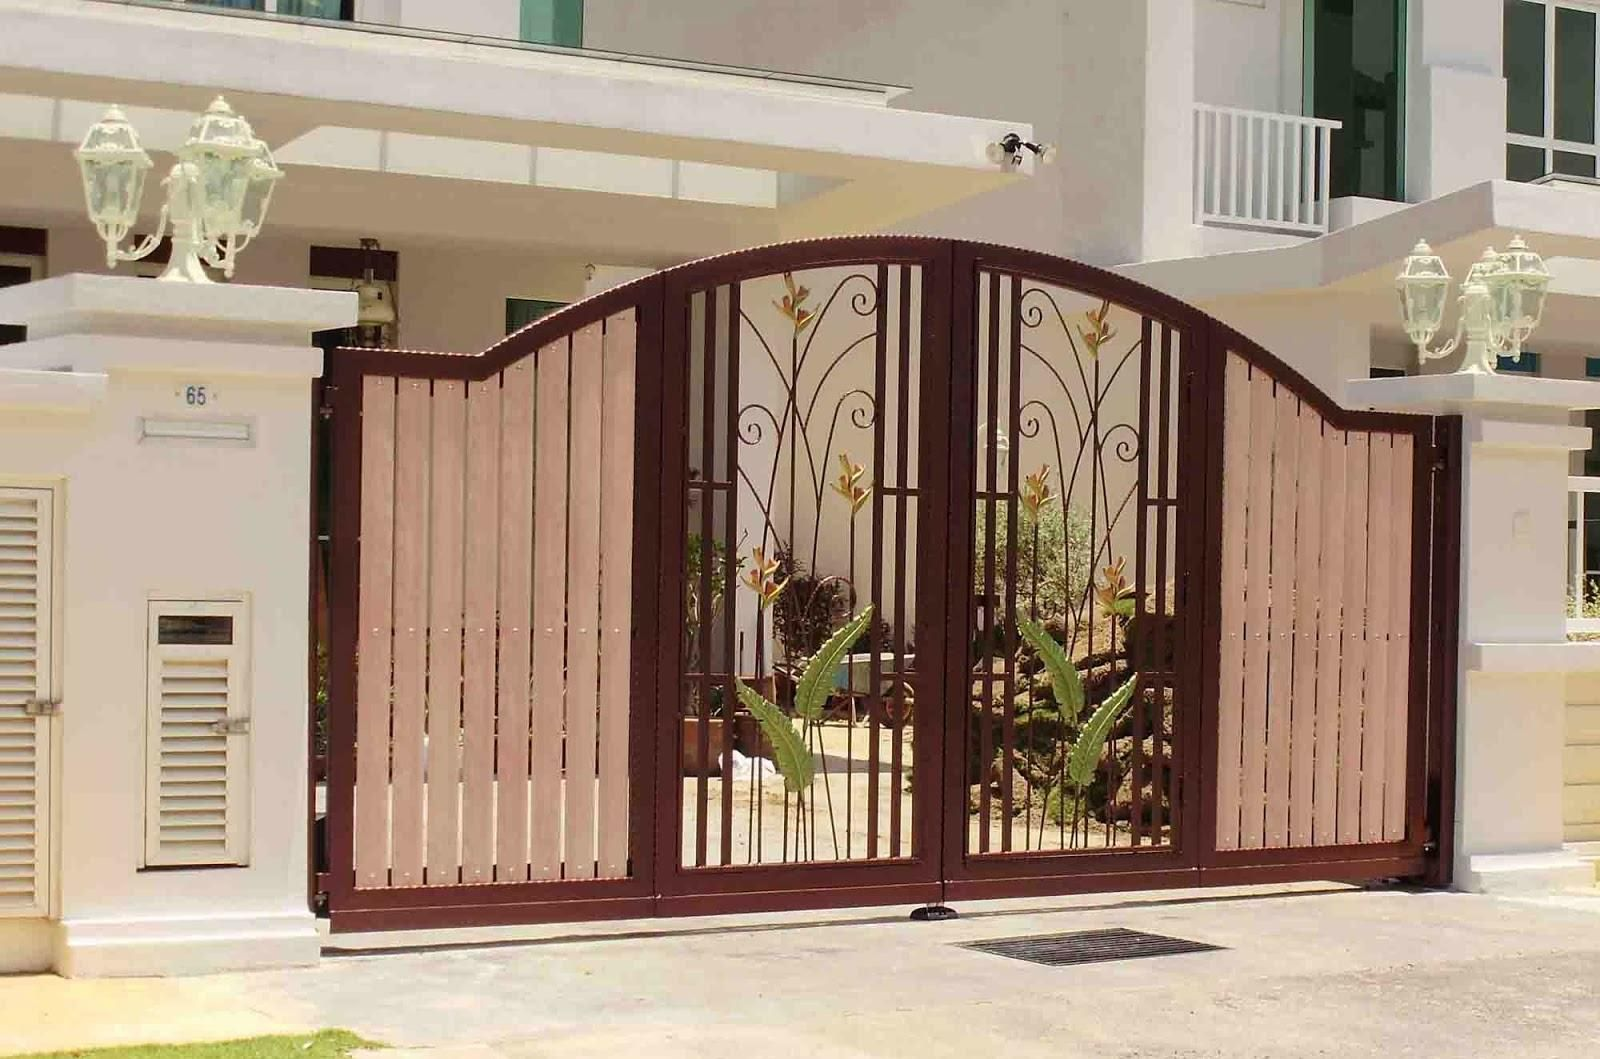 b9bde56832104f1d750d5263bb9854ac - 18+ Small House Main Gate Design 2020 With Price Pictures